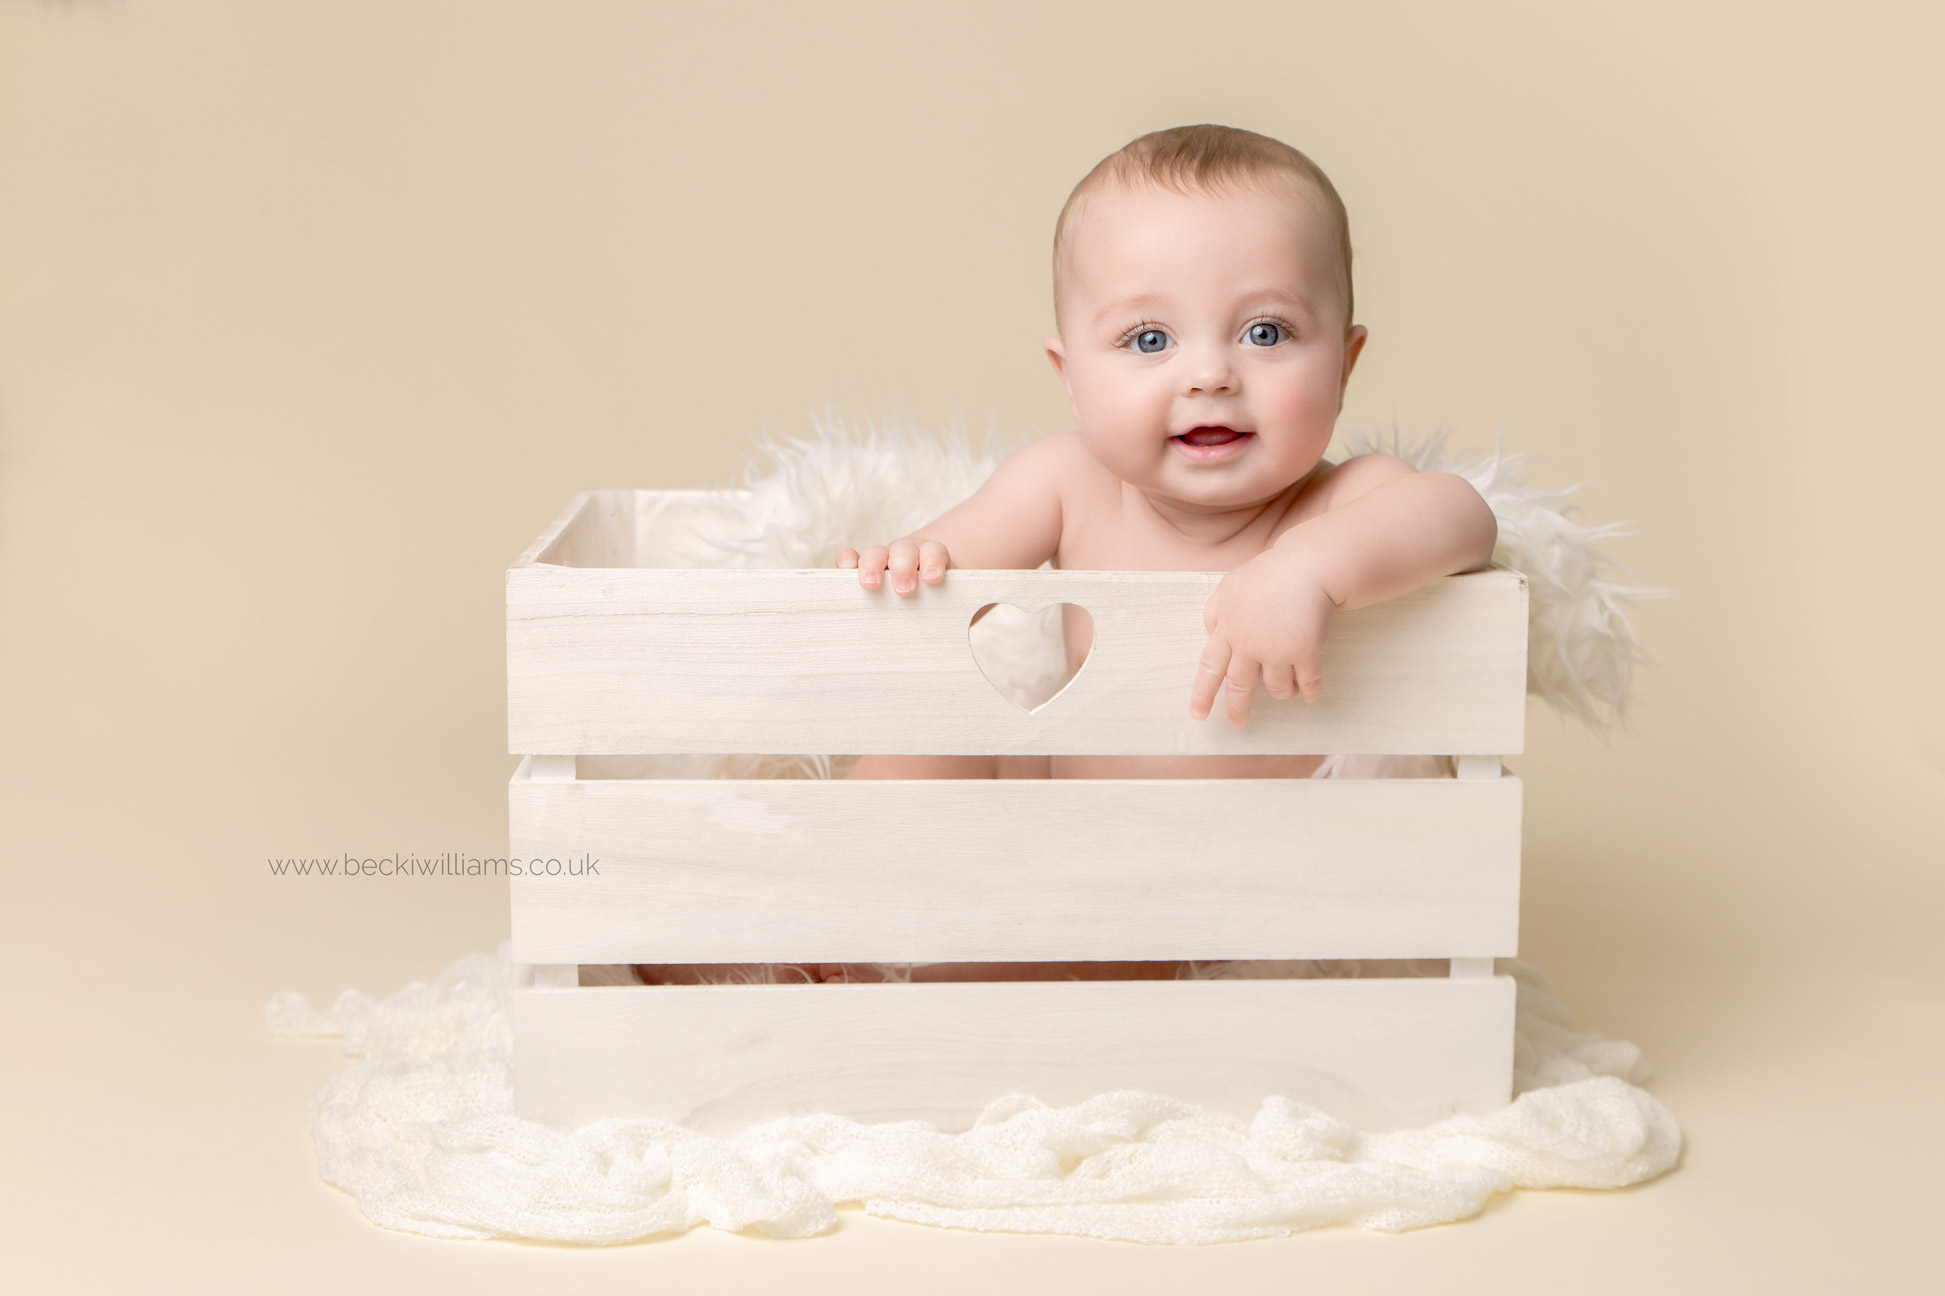 cute baby photo of a little boy sitting in a white crate, smiling at his professional photo shoot